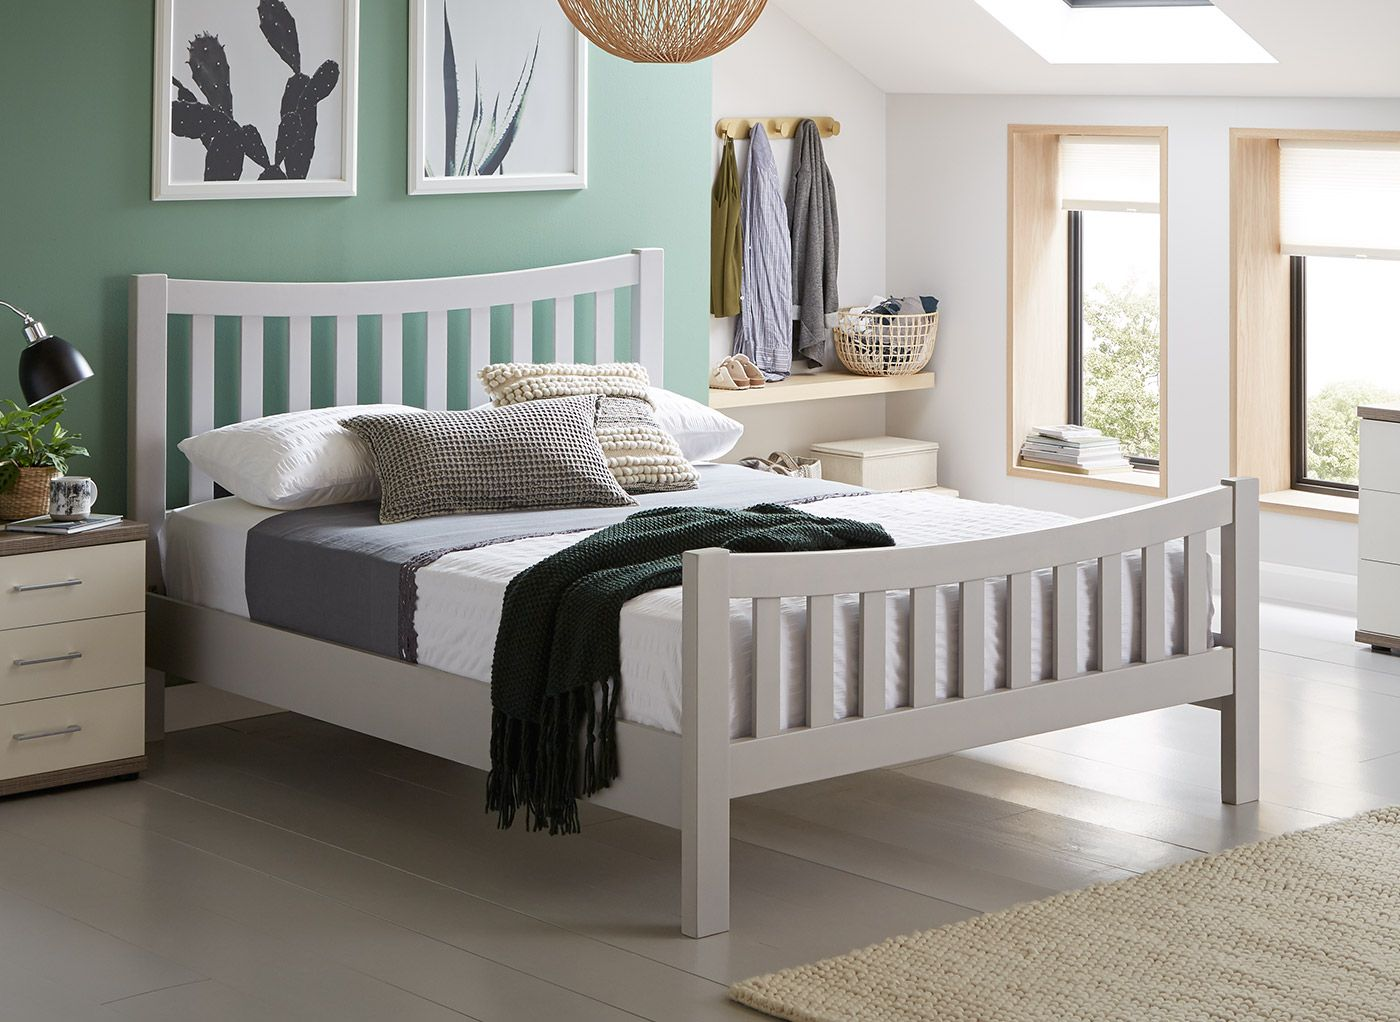 Pin By Ashleigh Hickman On Bedroom Painted Bed Frames Grey